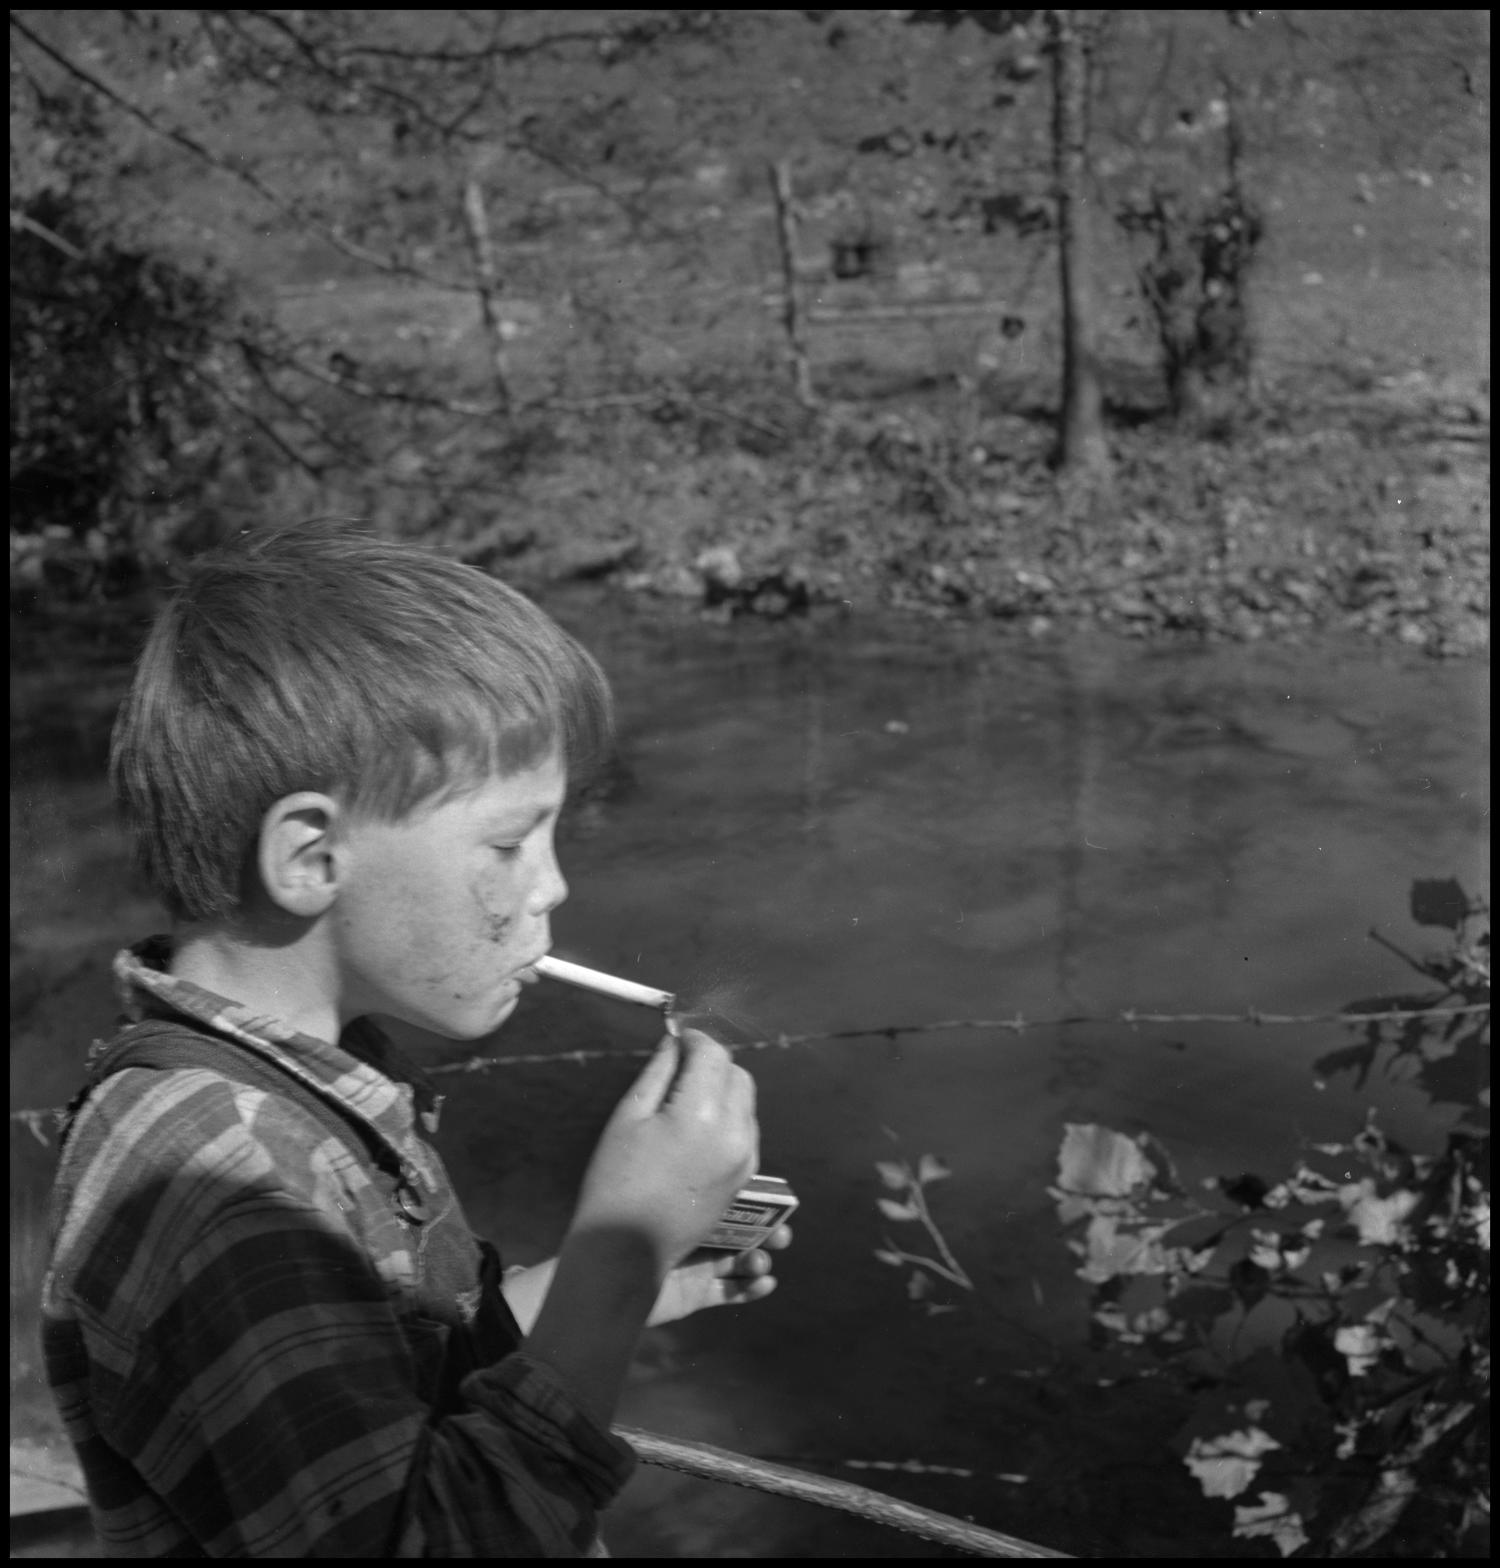 [Smoking boy], Photograph of a young boy lighting a cigarette. In the image, the unidentified boy, wearing overalls, is lighting his cigarette next to a stream separated by barbed wire.,